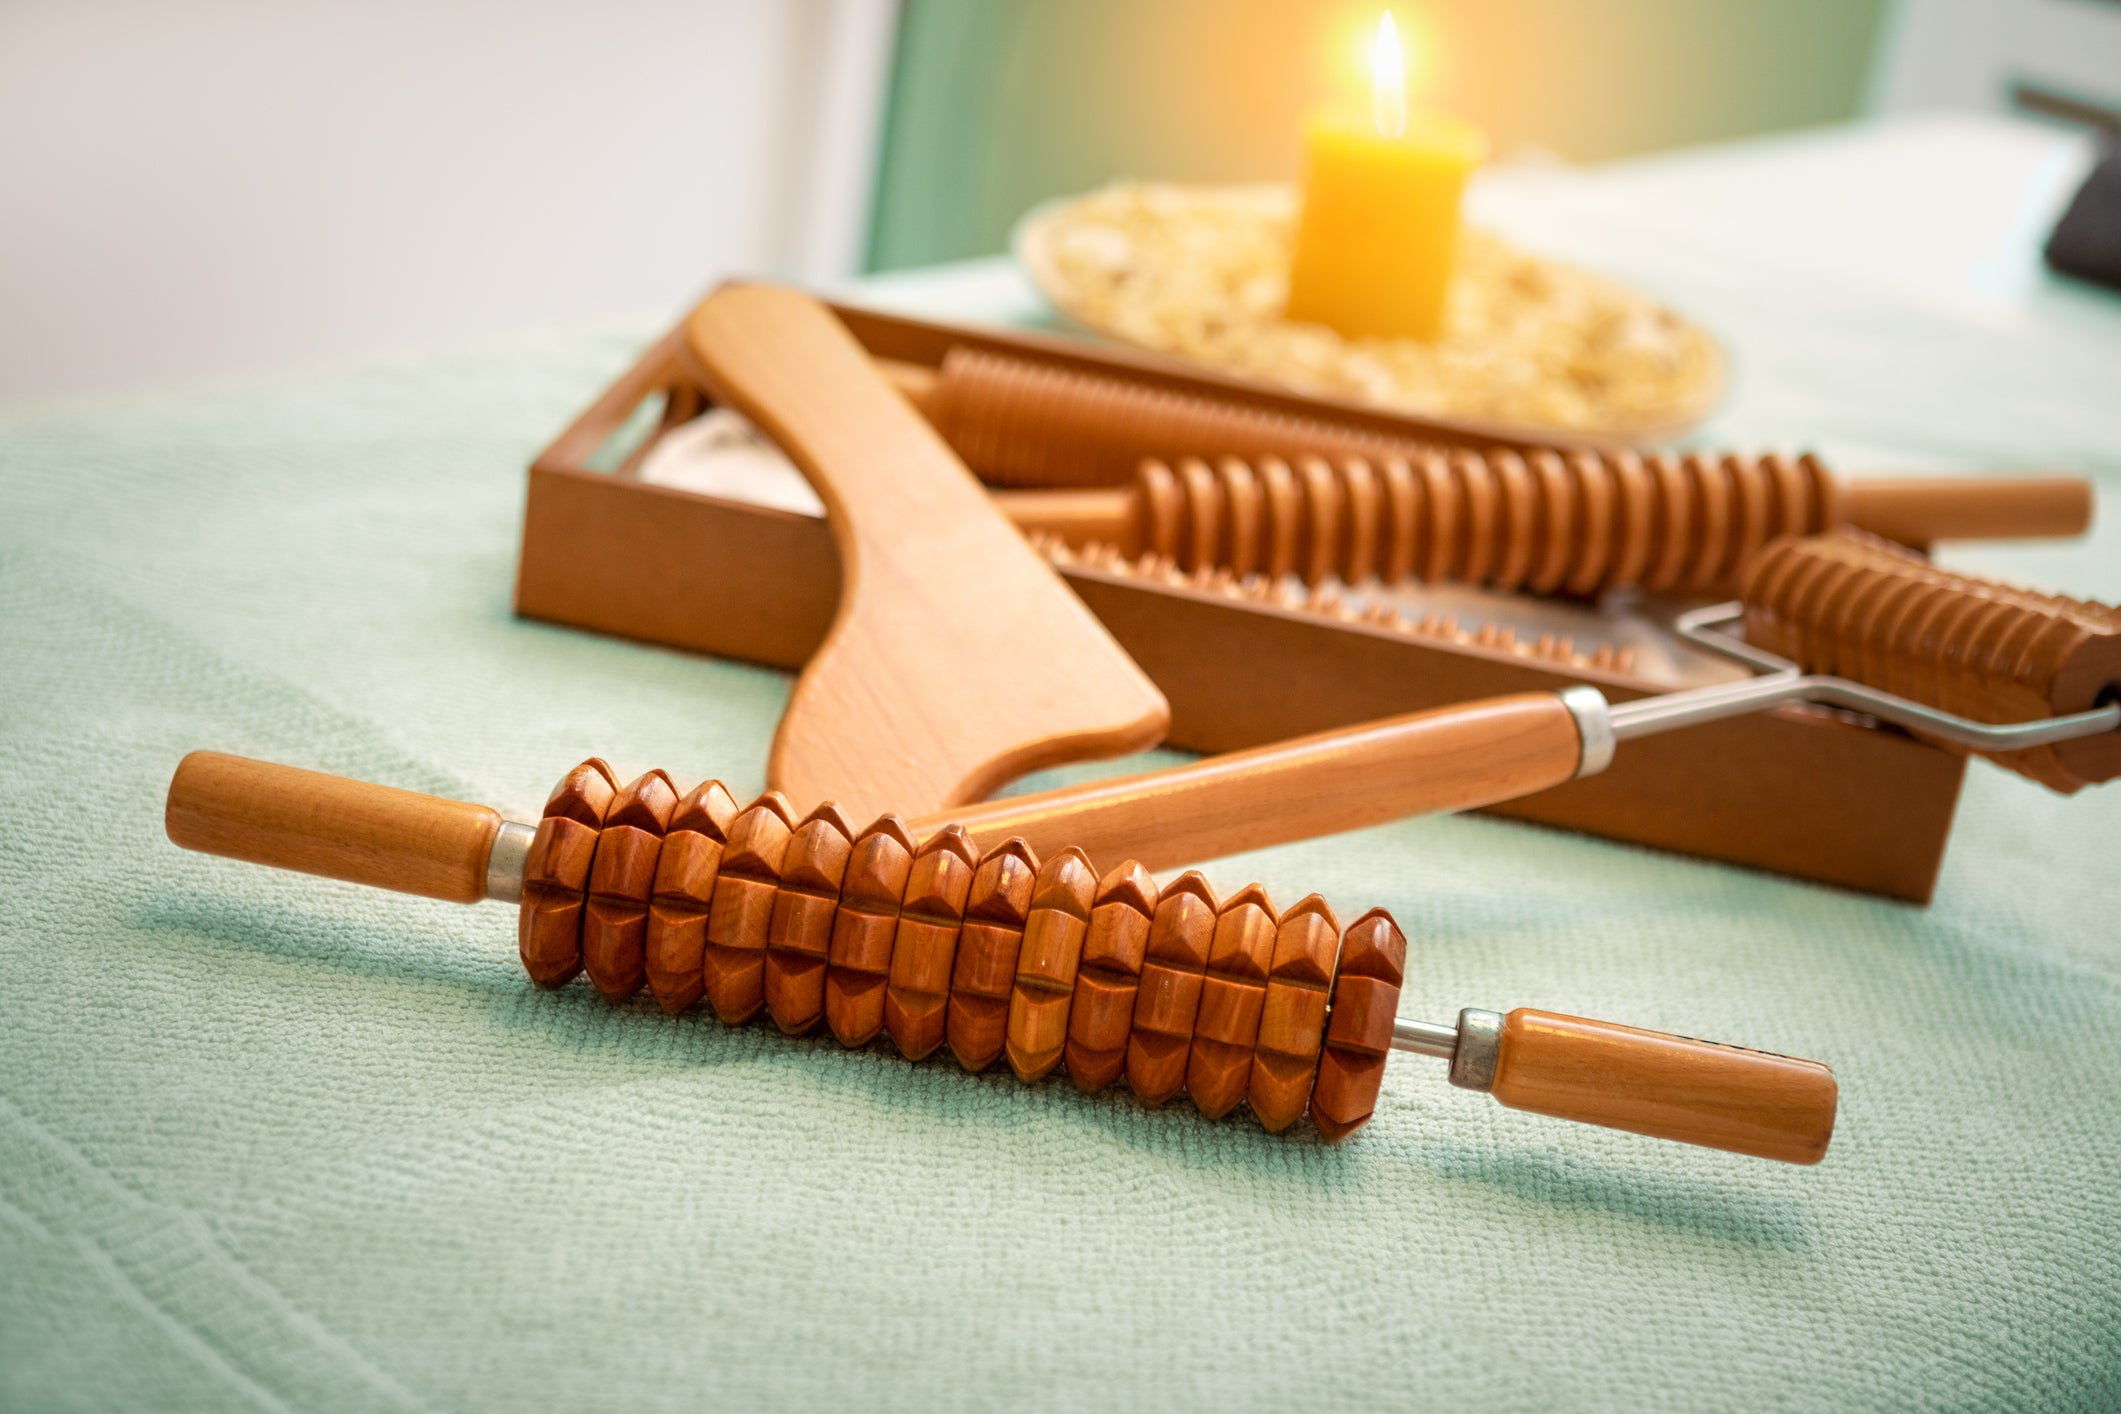 6 best massage tools to relax your muscles at home   indy100   indy100